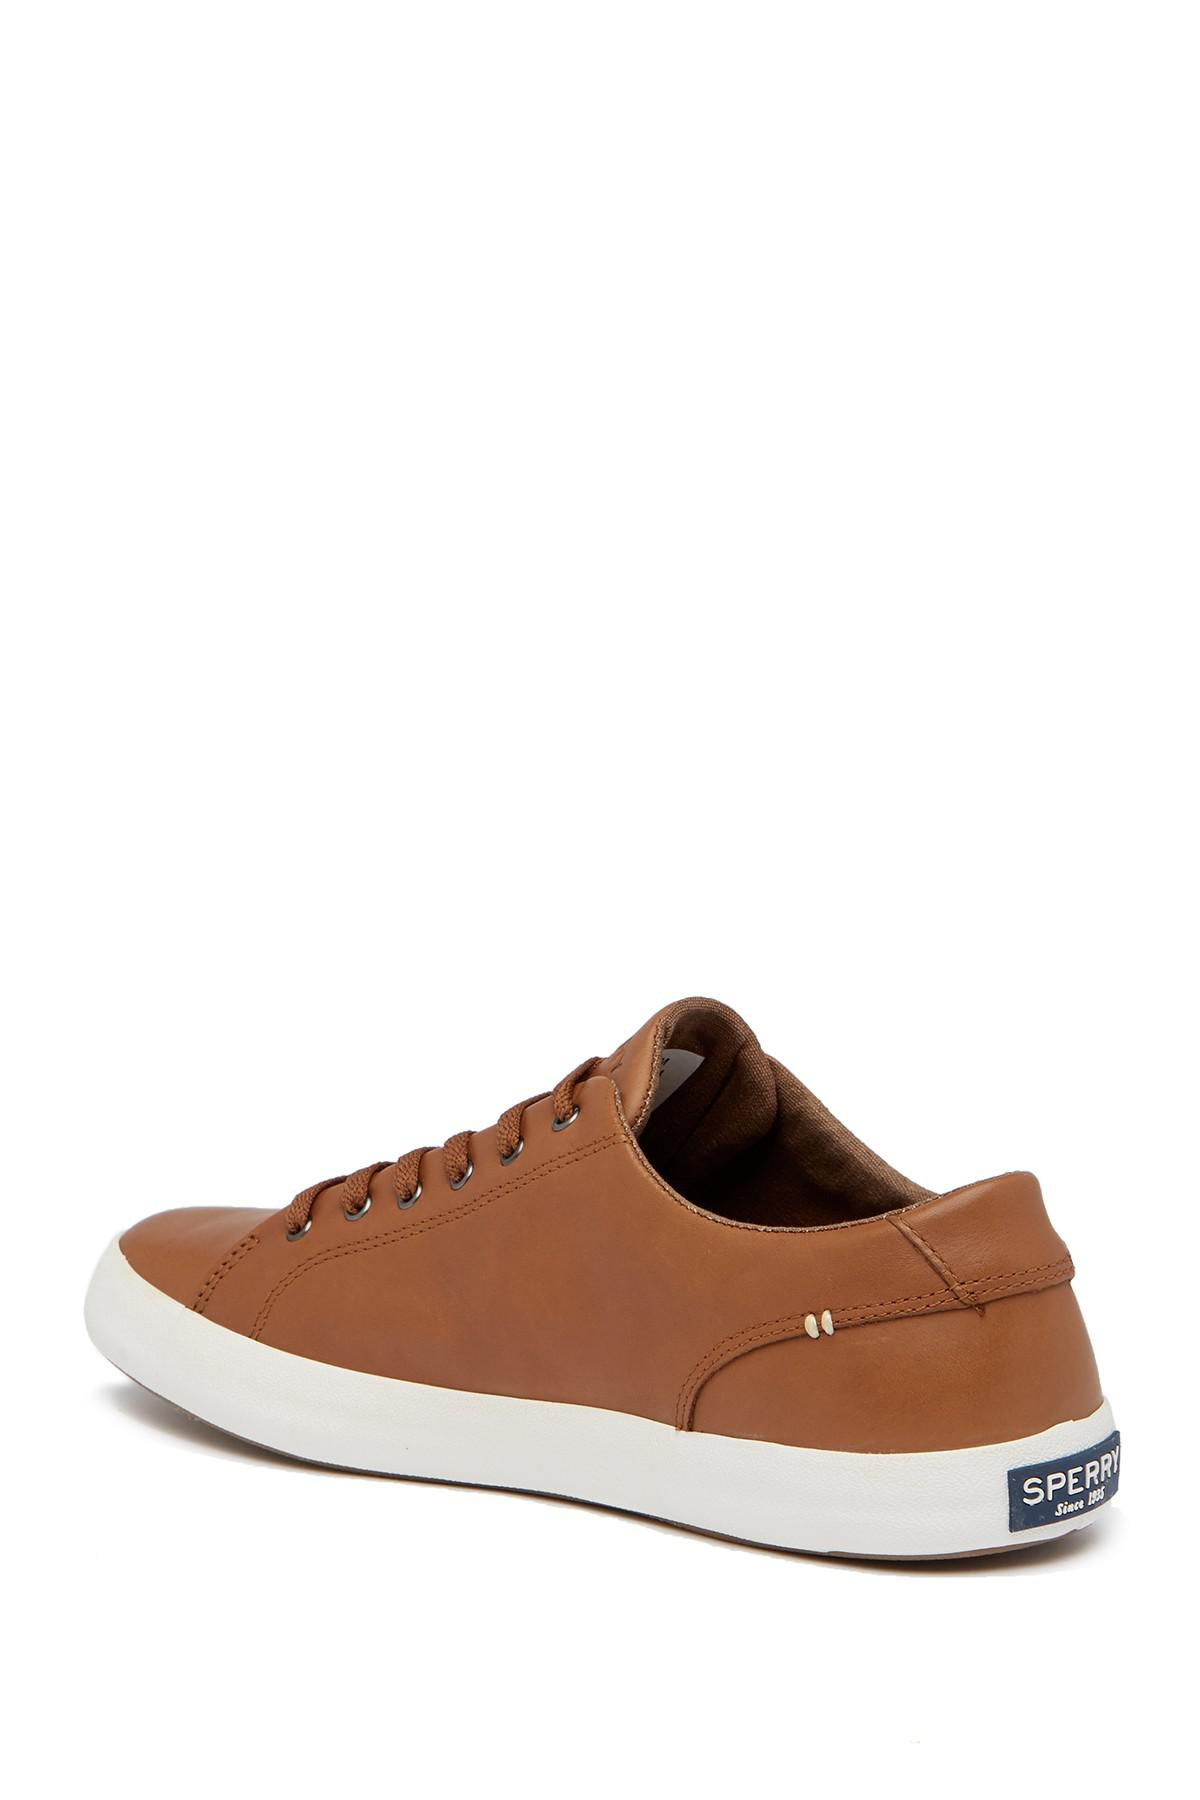 Sperry High Top Leather Shoes